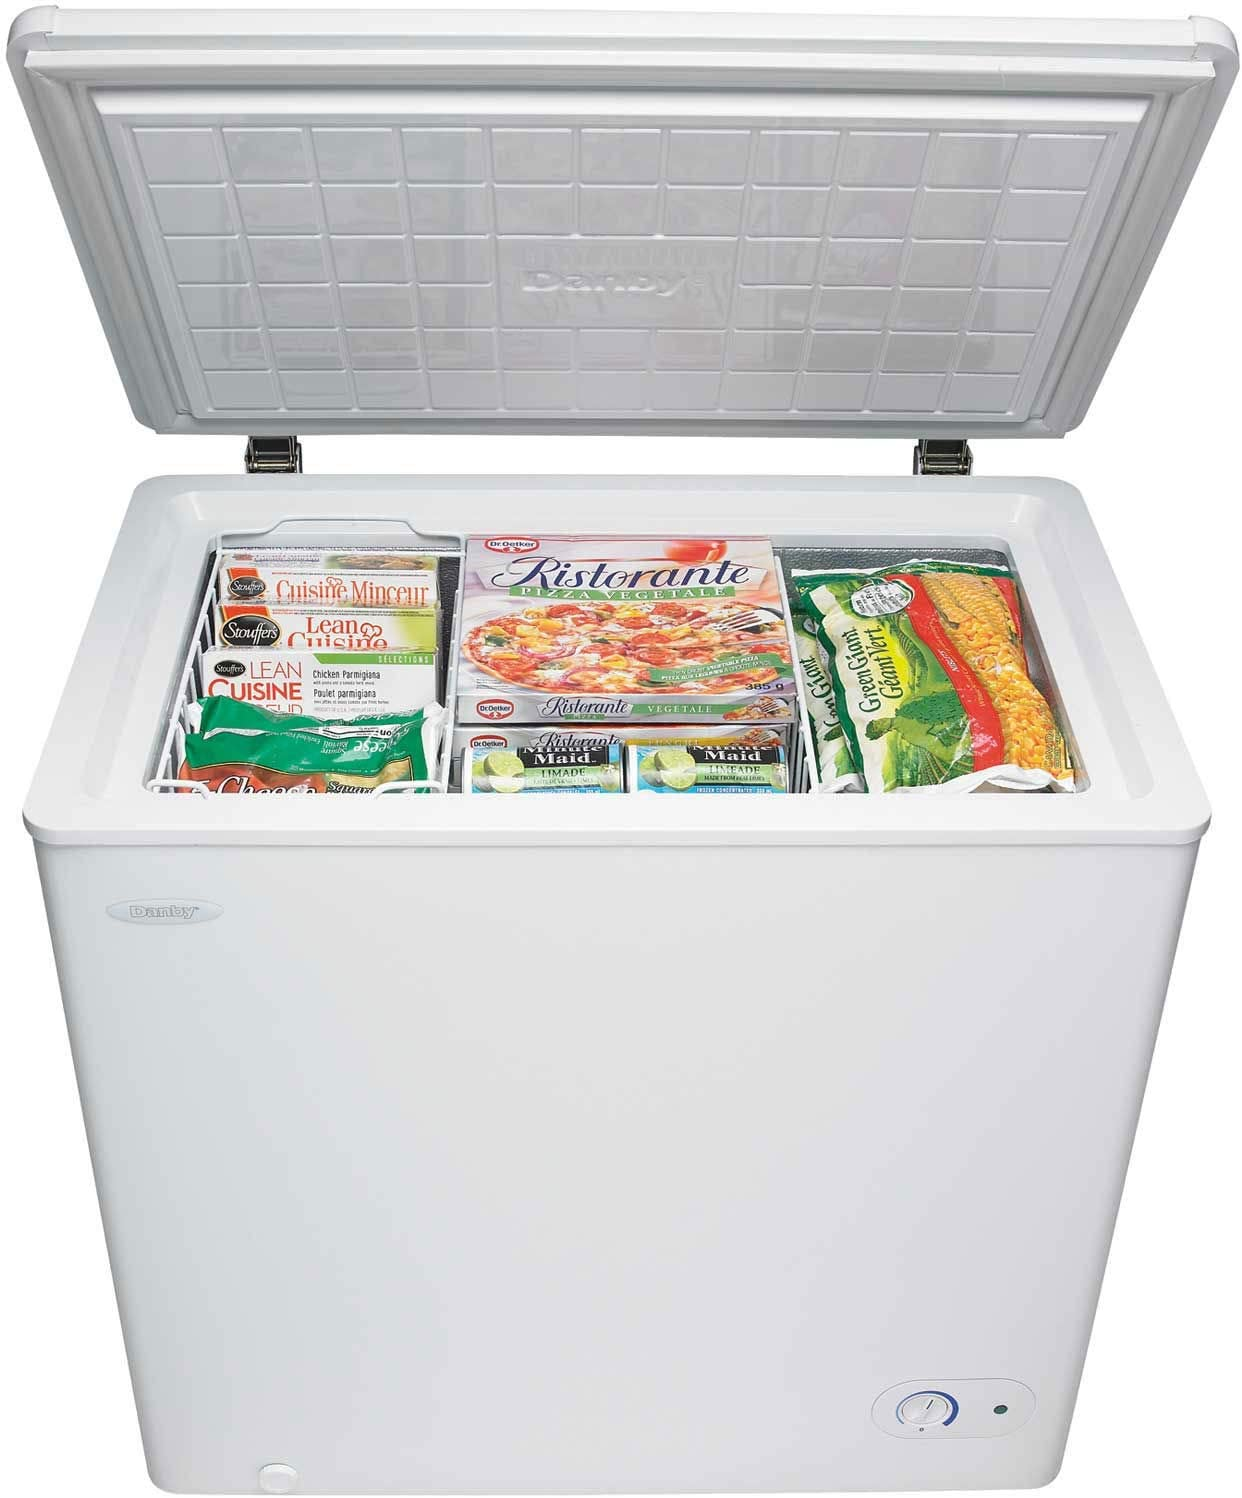 Danby 5.5-Cu Ft Chest Freezer in White